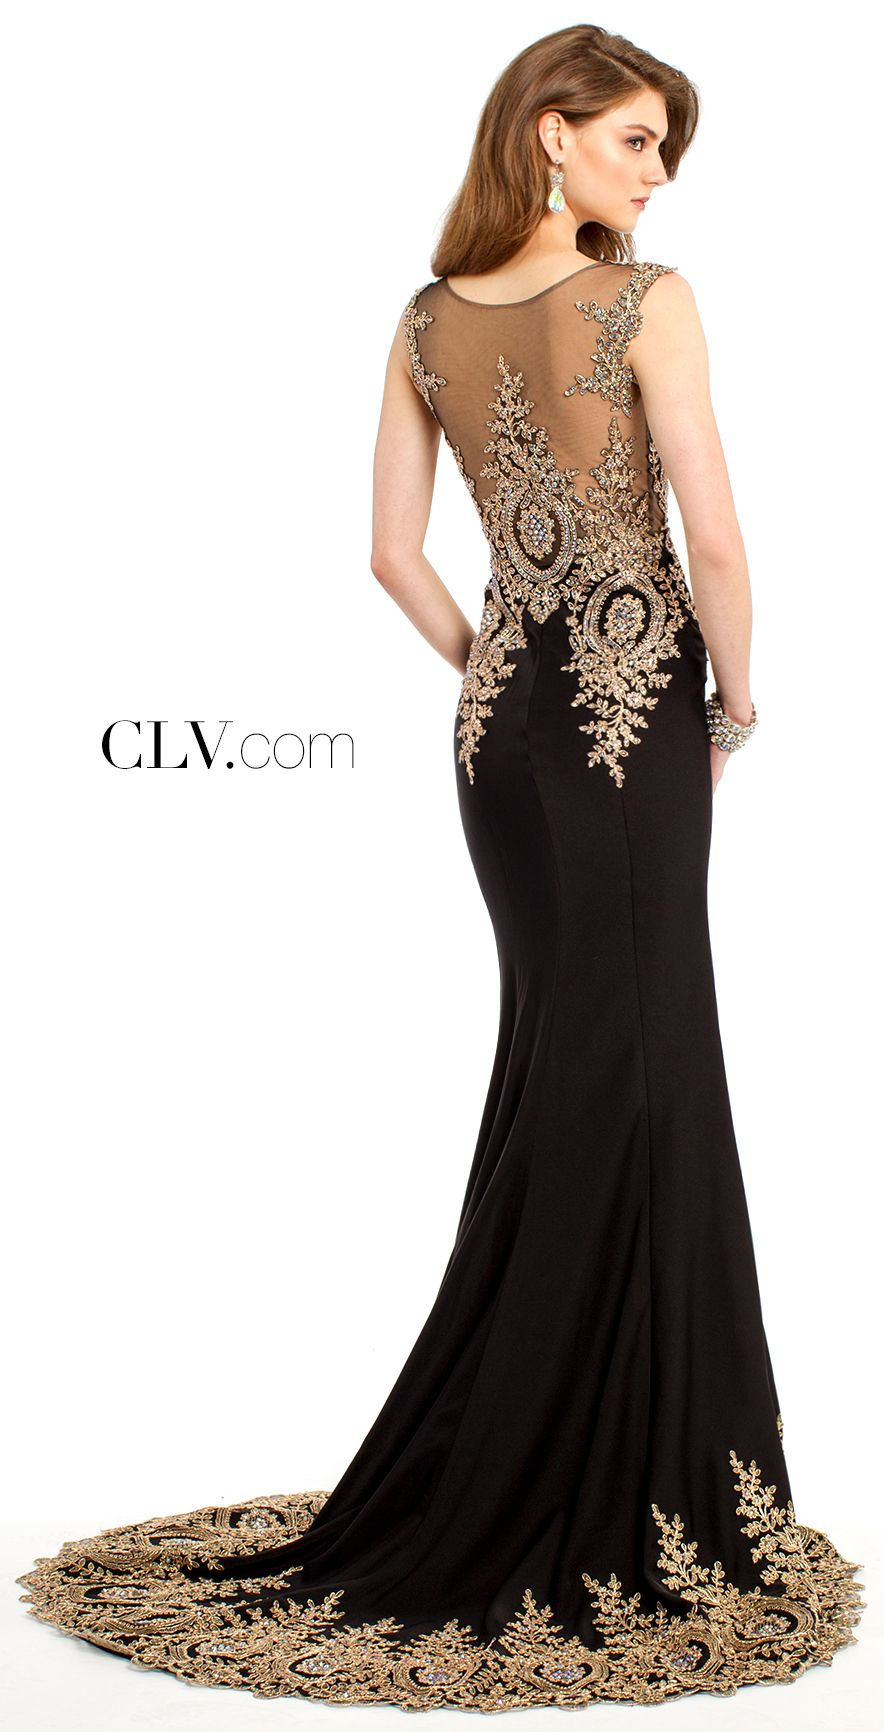 Black dress gold lace - Camille La Vie Evening Gowns And Party Dresses